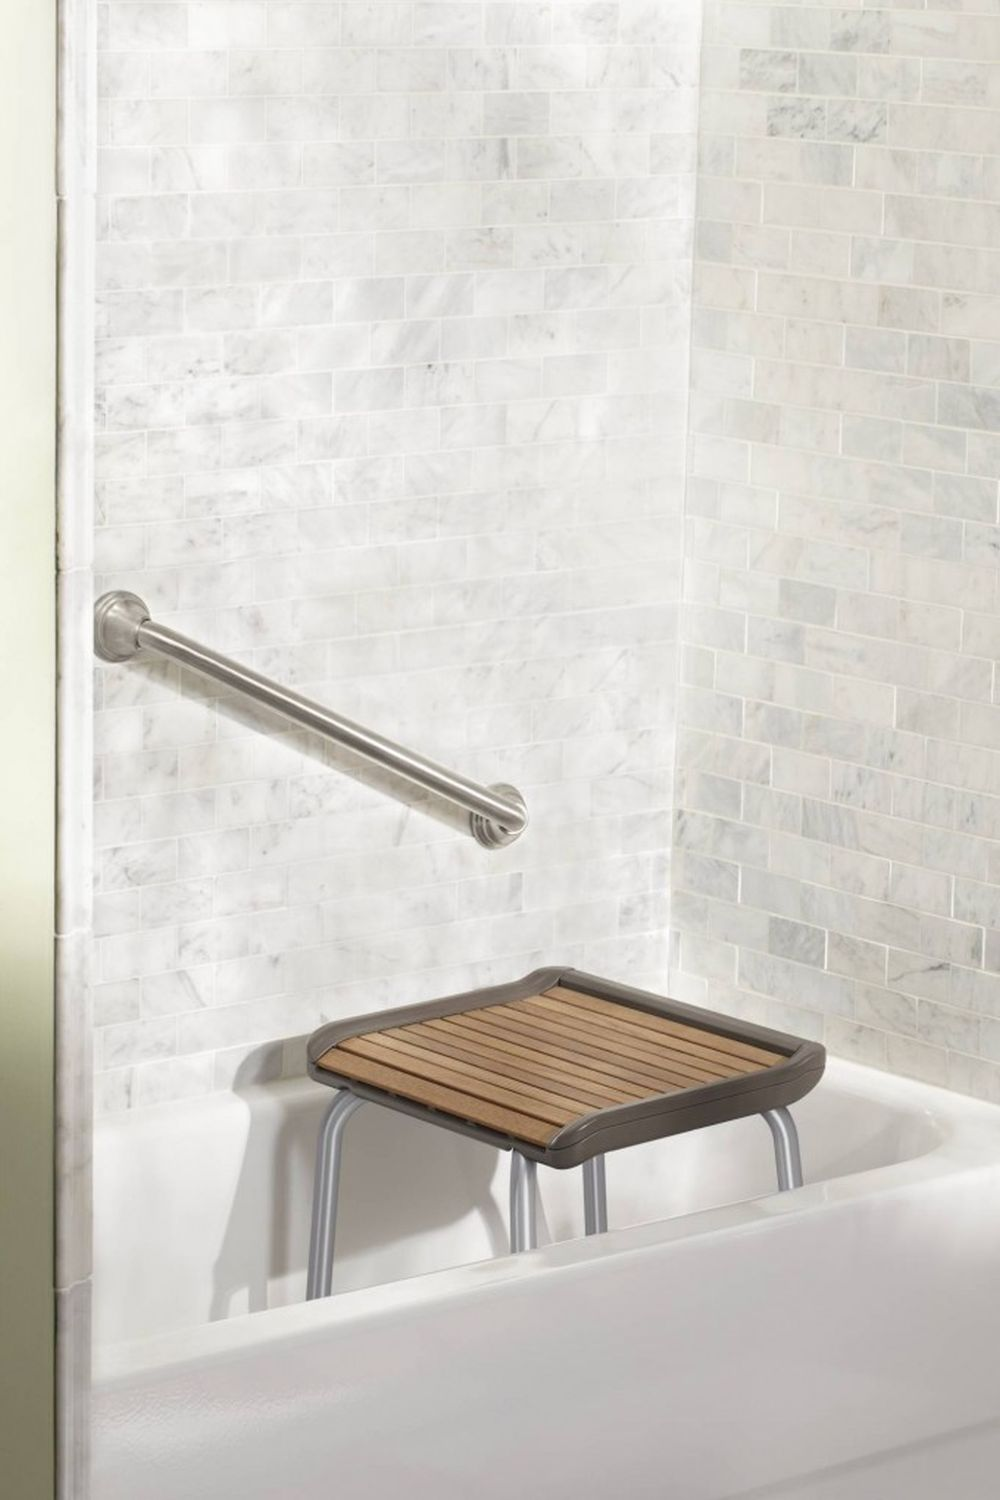 ada bathroom grab bar placement how to install bathroom safety bars in your house